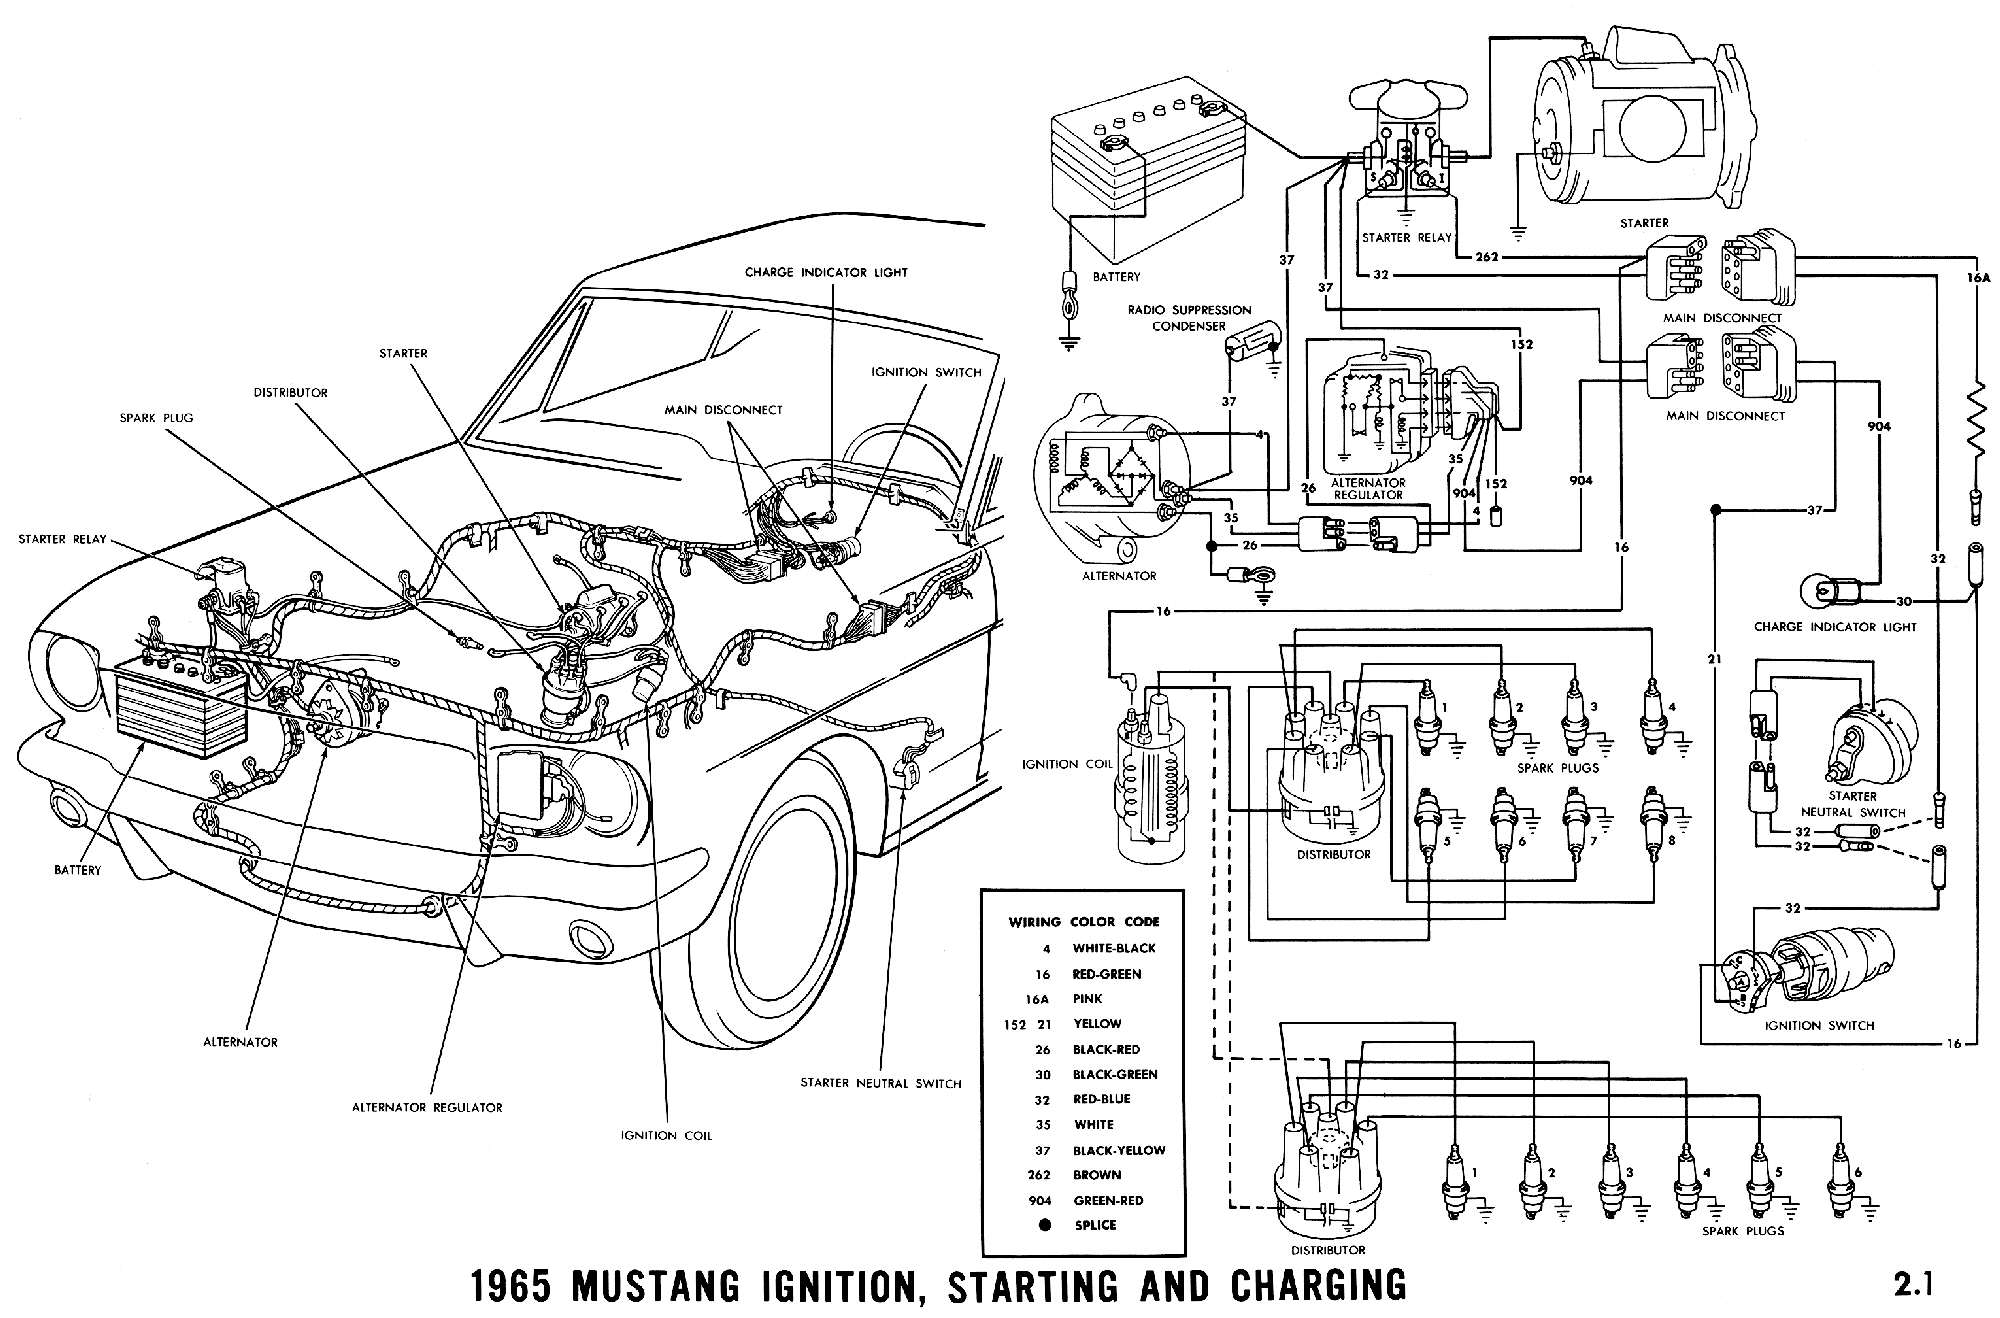 1965c 1965 mustang wiring diagrams average joe restoration 1968 ford mustang wiring diagram at bayanpartner.co